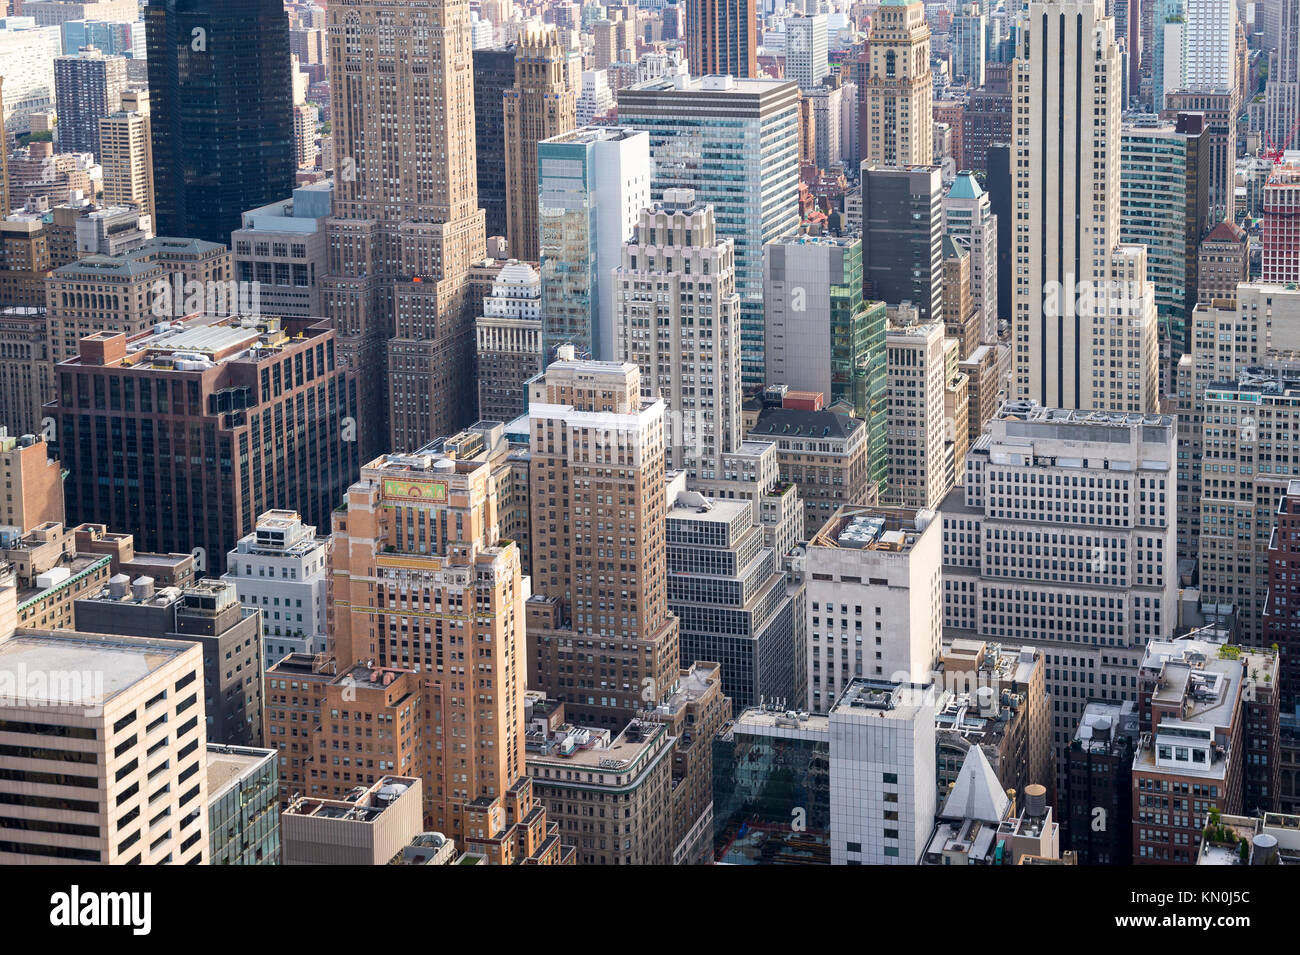 Aerial view of the urban skyscraper canyons of the New York City skyline in Midtown Manhattan Stock Photo